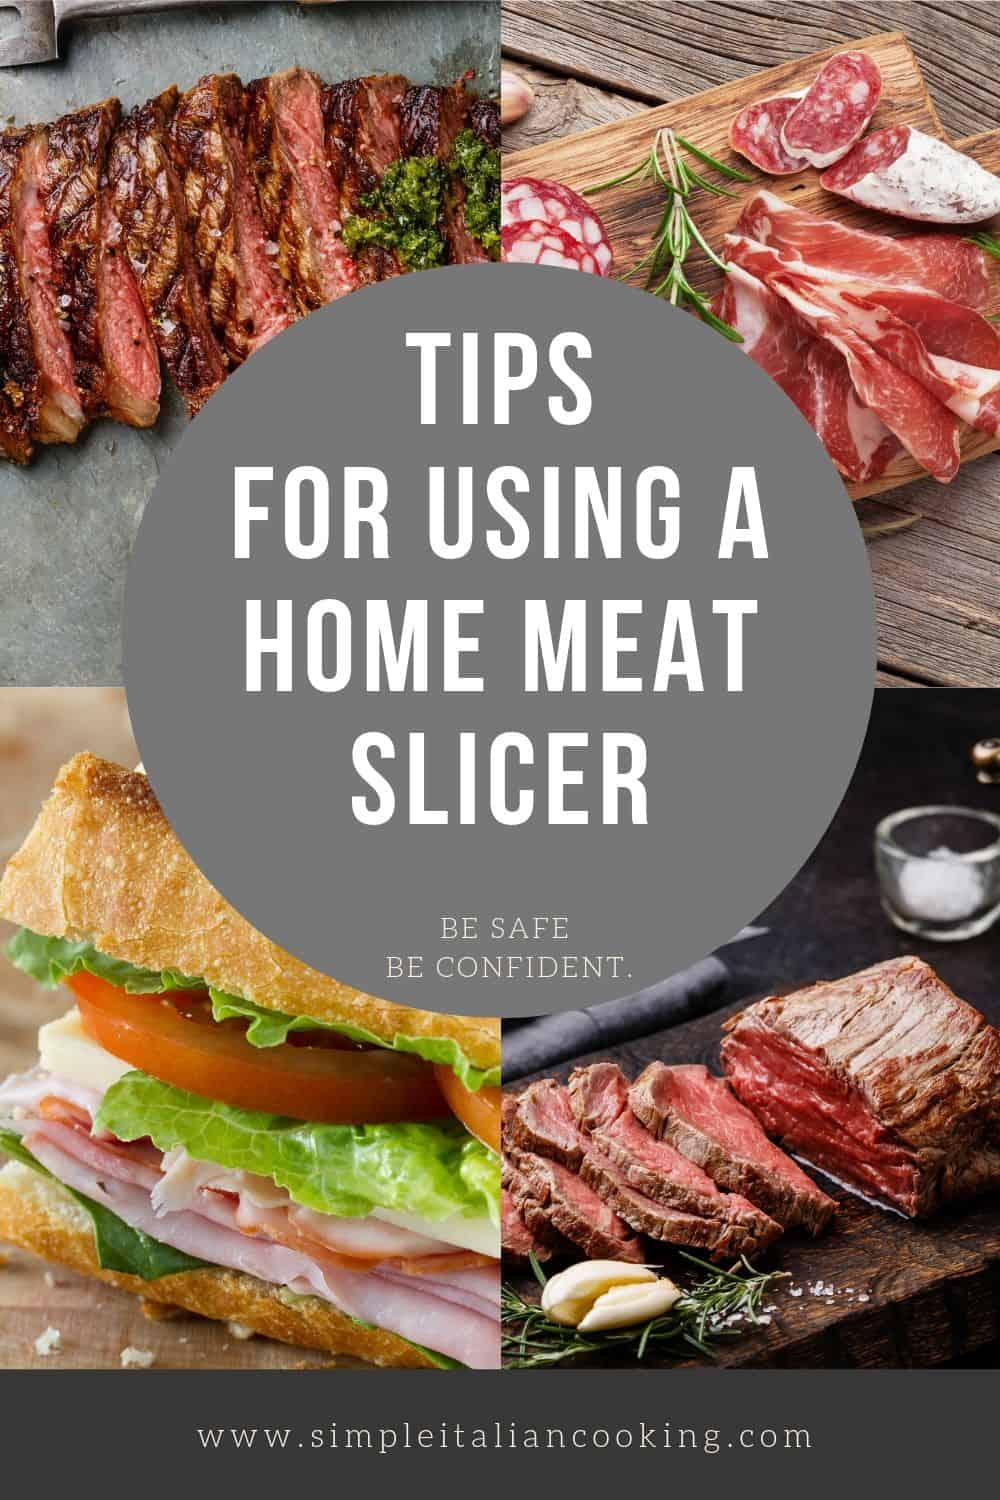 These are the must-know tips for how to use a home meat slicer to maximize your investment in your kitchen food equipment.  Make wonderful dishes at home with the help of a slicer.  #meatslicer #foodslicer #homefoodslicer #homemeatslicer #foodslicertips #meatslicertips